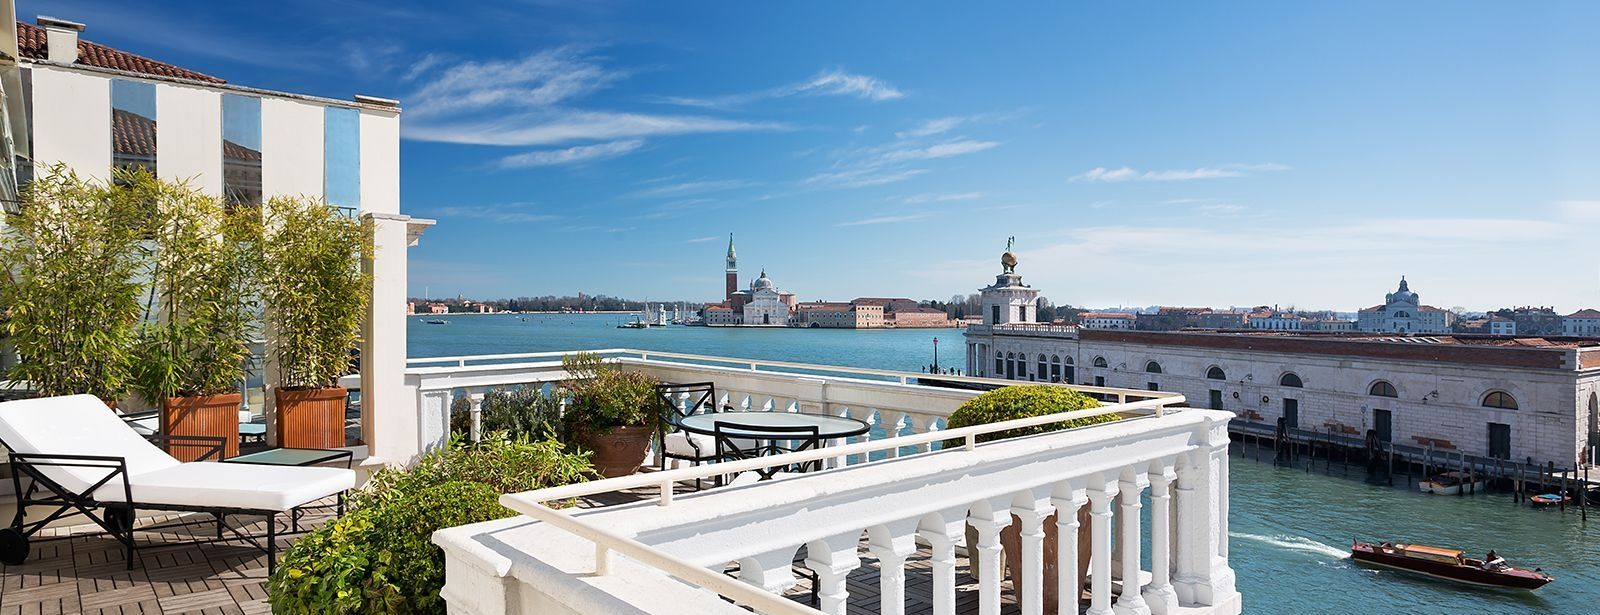 View from terrace at the Deluxe Terrace Suite at The Westin Europa & Regina, Venice